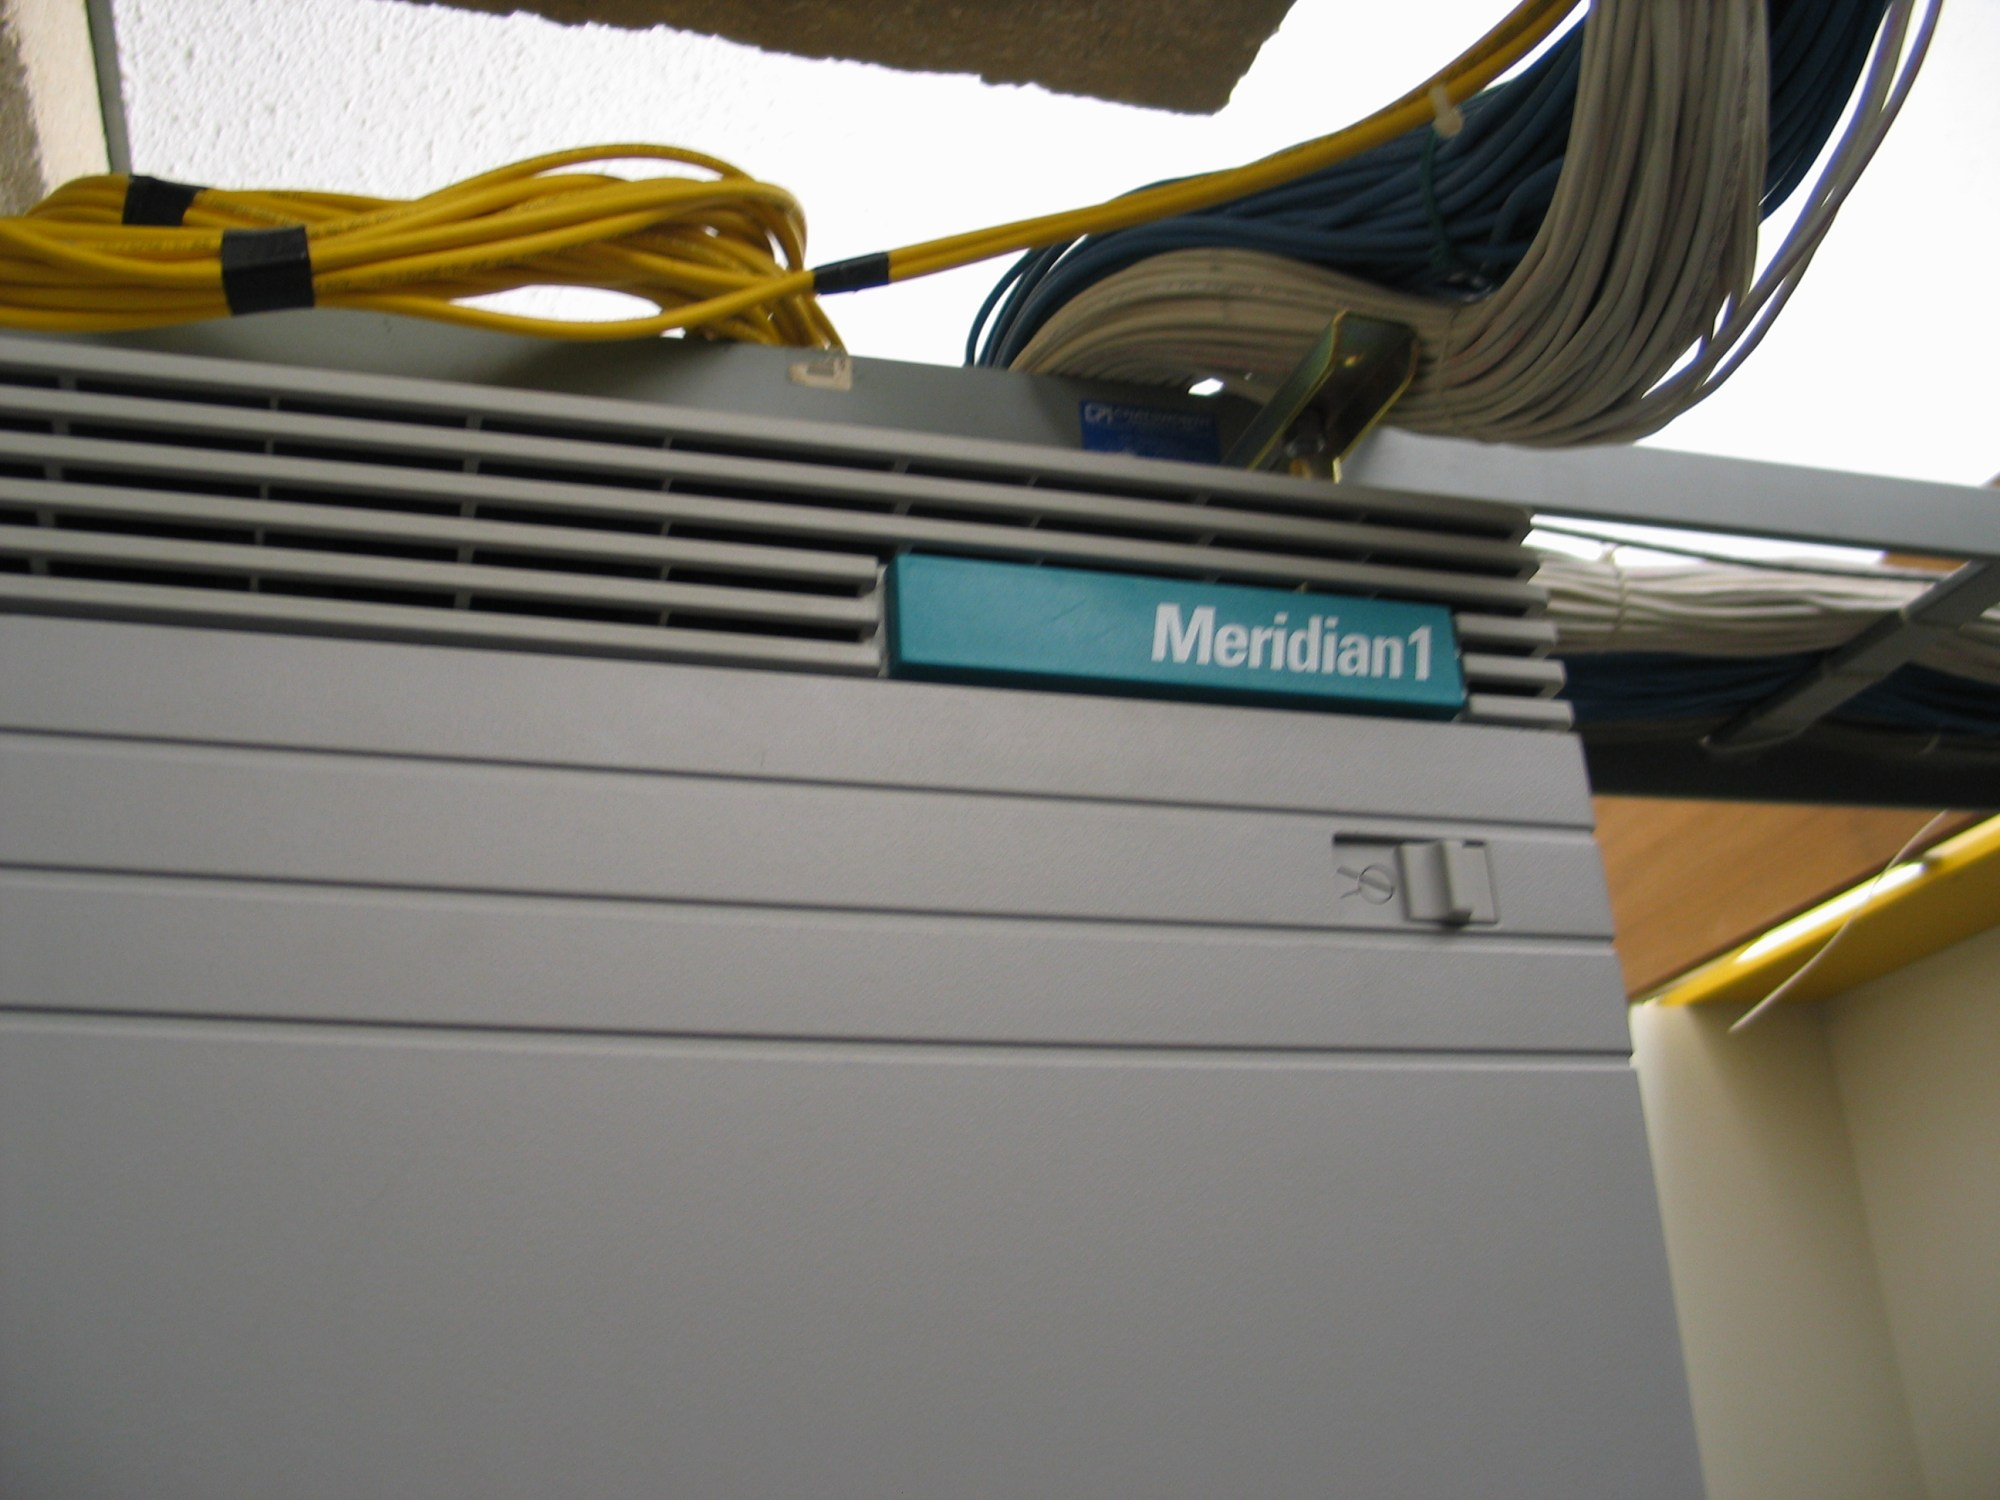 hight resolution of nortel phone system wiring